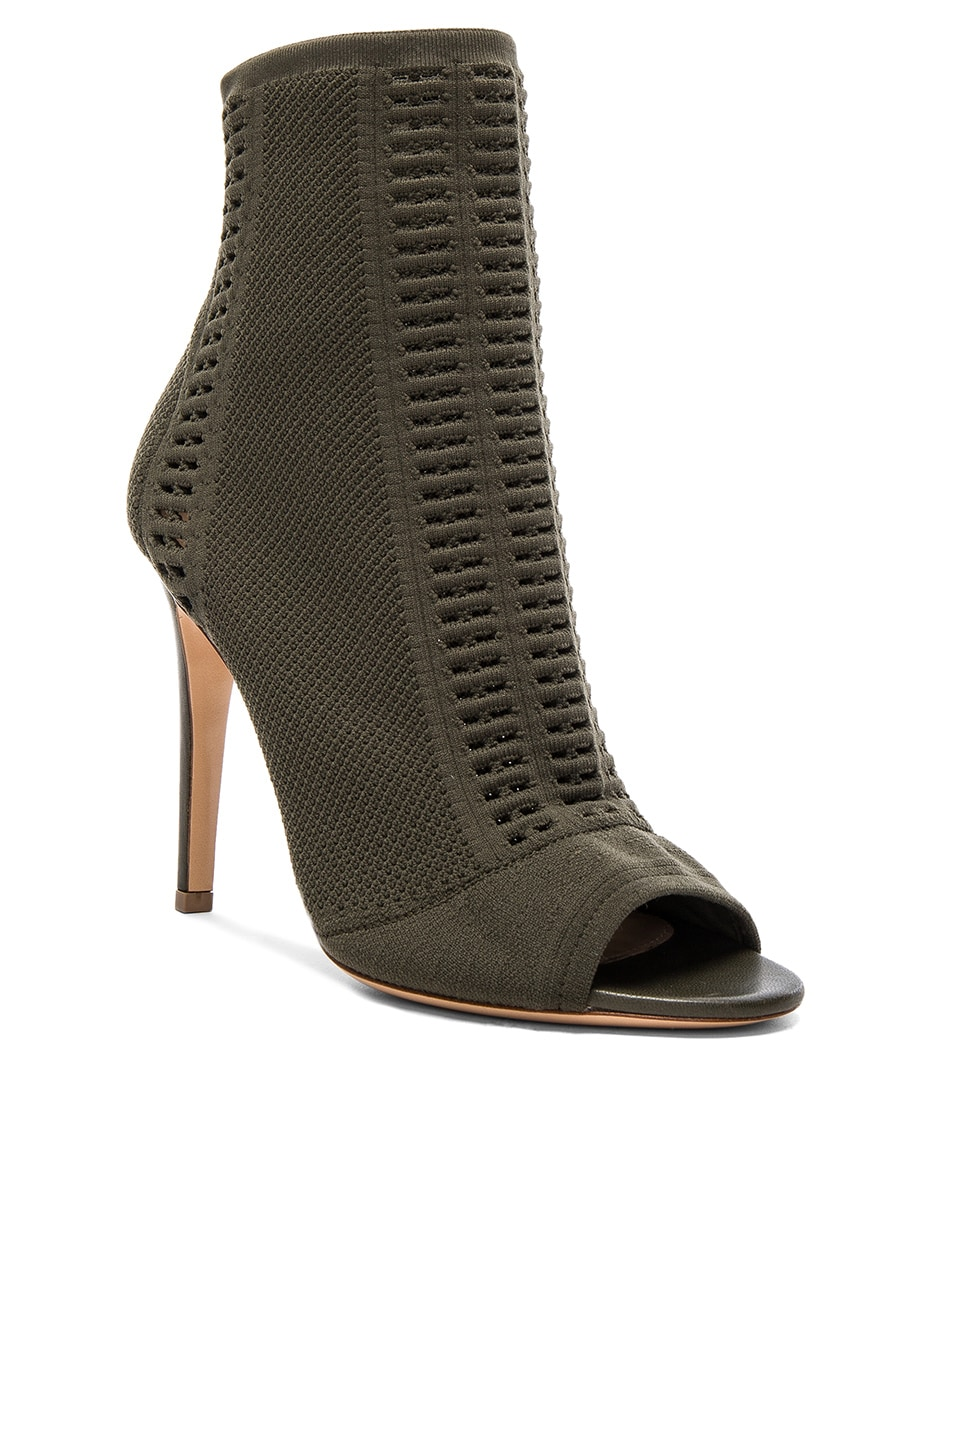 Image 2 of Gianvito Rossi Knit Vires Booties in Army